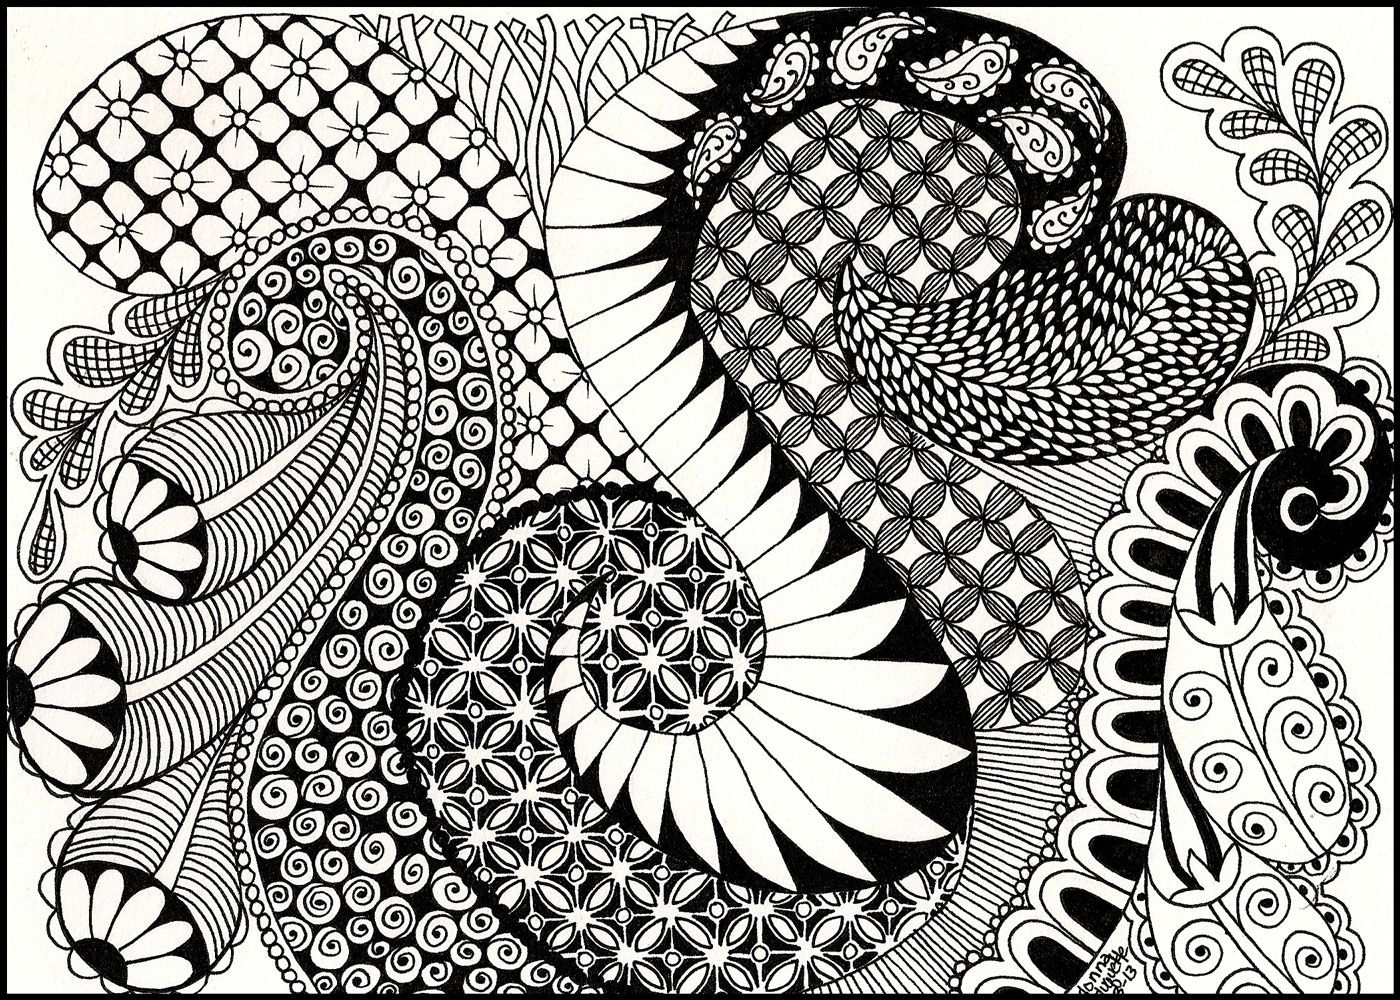 Discover the meaning and symbolism of doodles Why people doodle what the shapes mean and how to interpret doodle drawings and scribbles